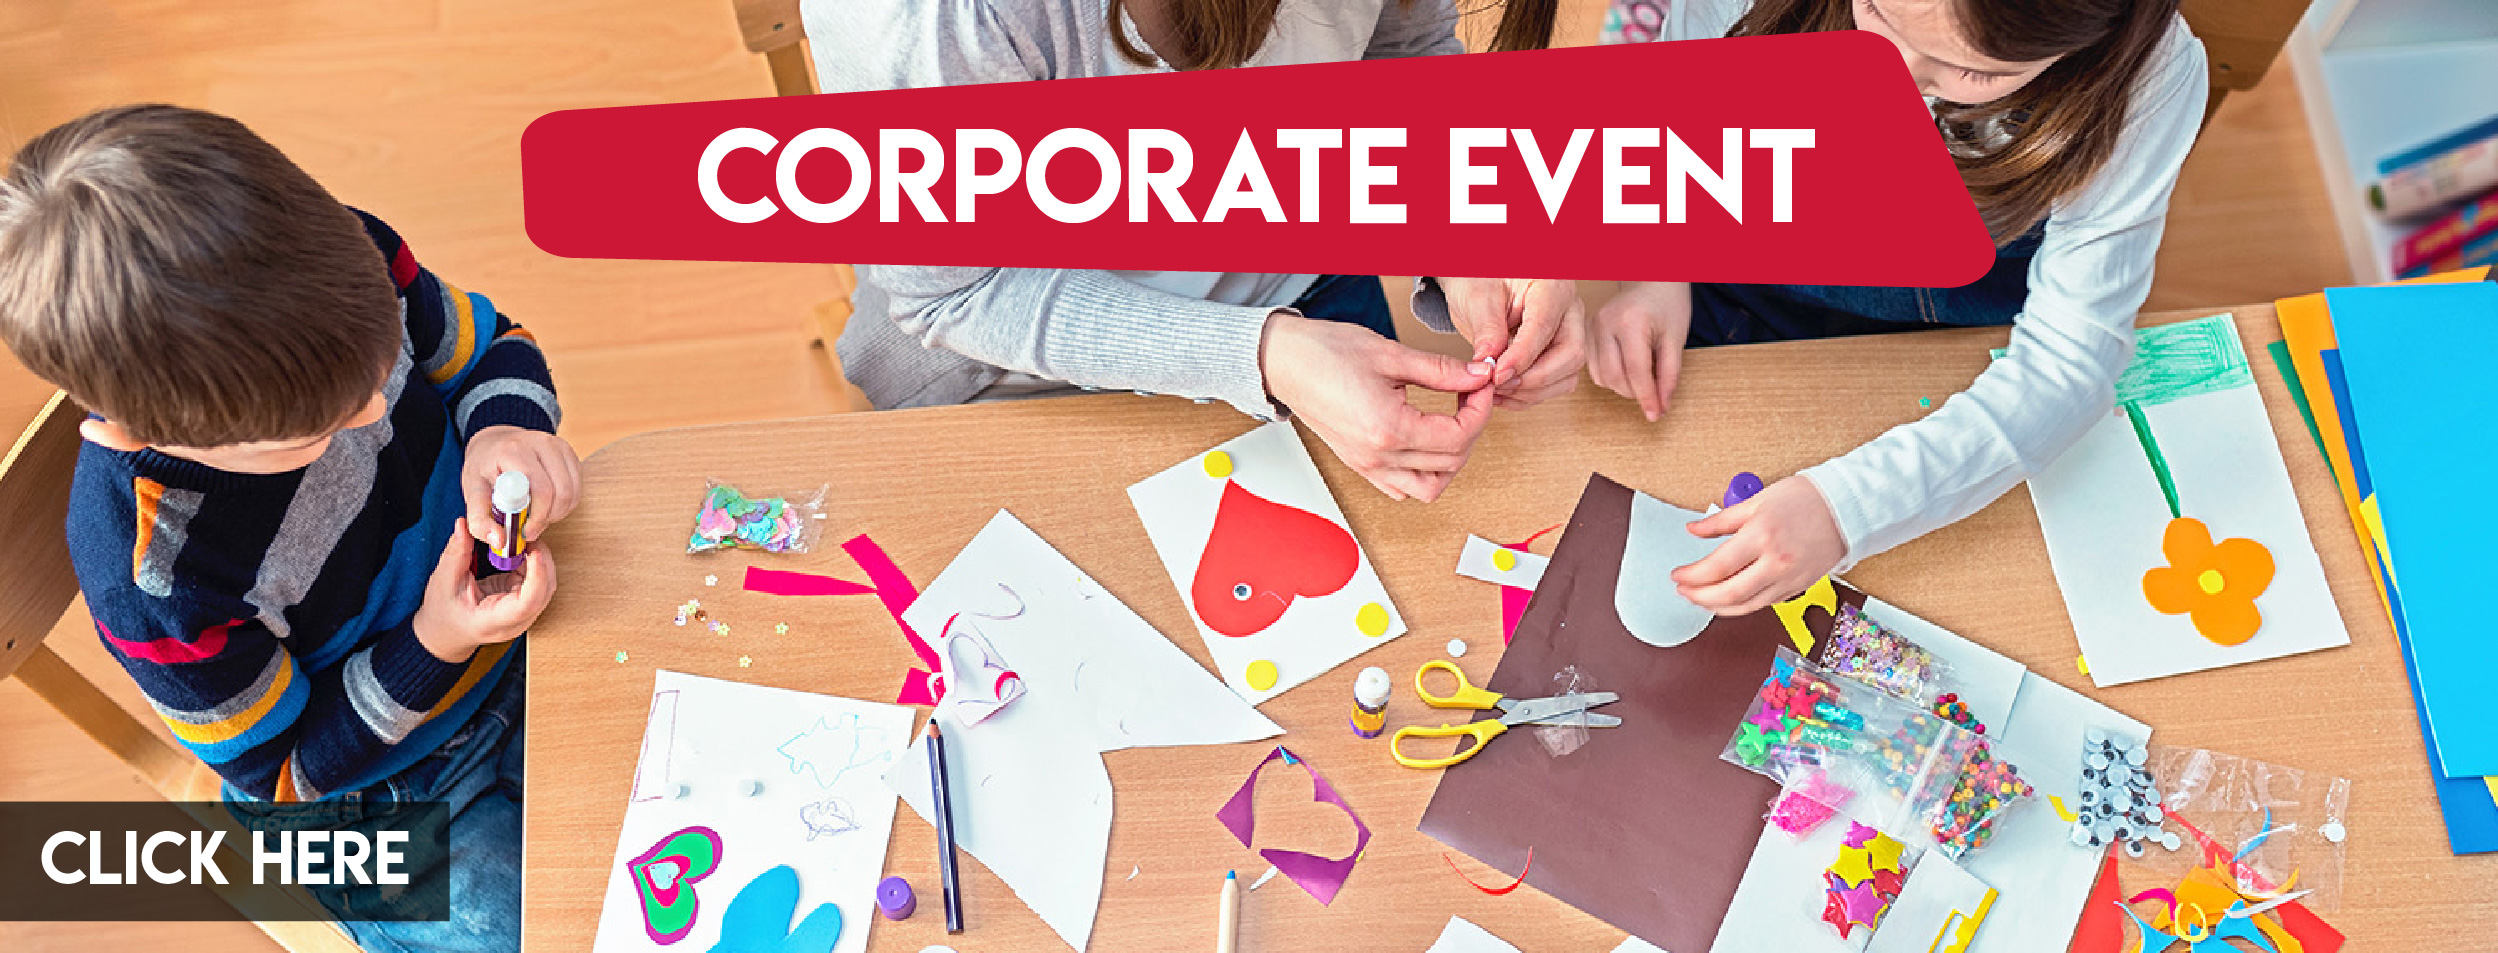 Corporate Event Banner